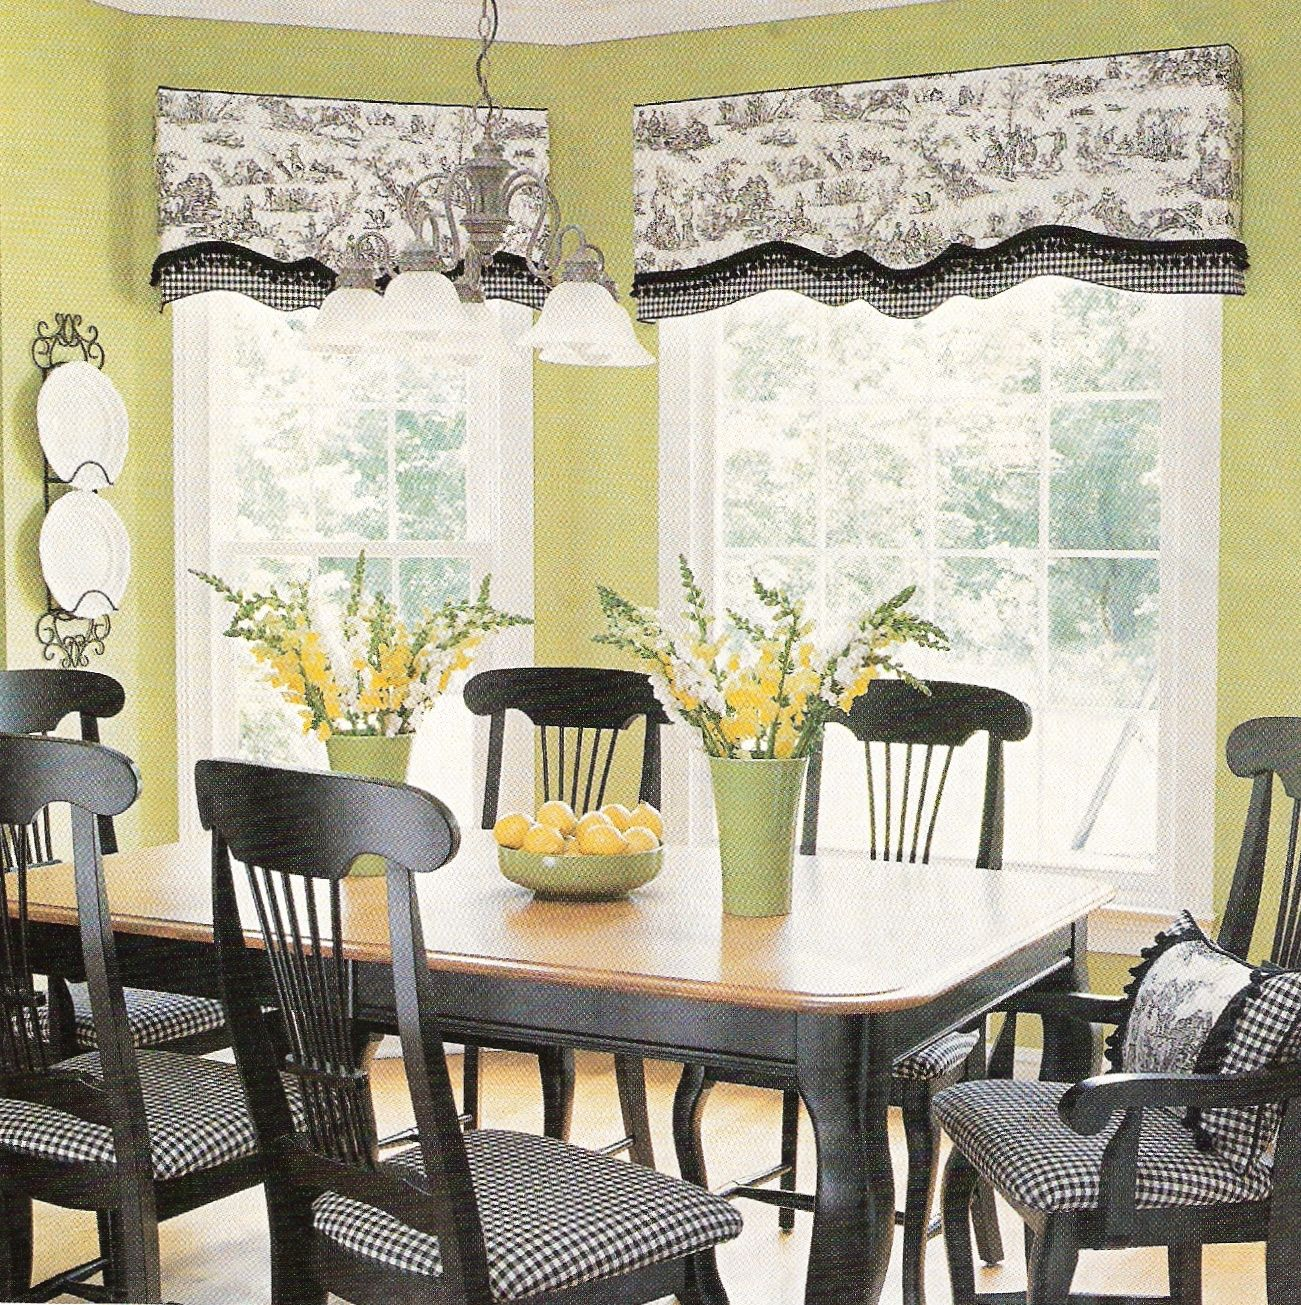 The Black White Toile Combined With The Gingham Check Give A Good Contrast To The Lime Green Walls The Fre White Dining Room Home Decor Fabric Dining Chairs